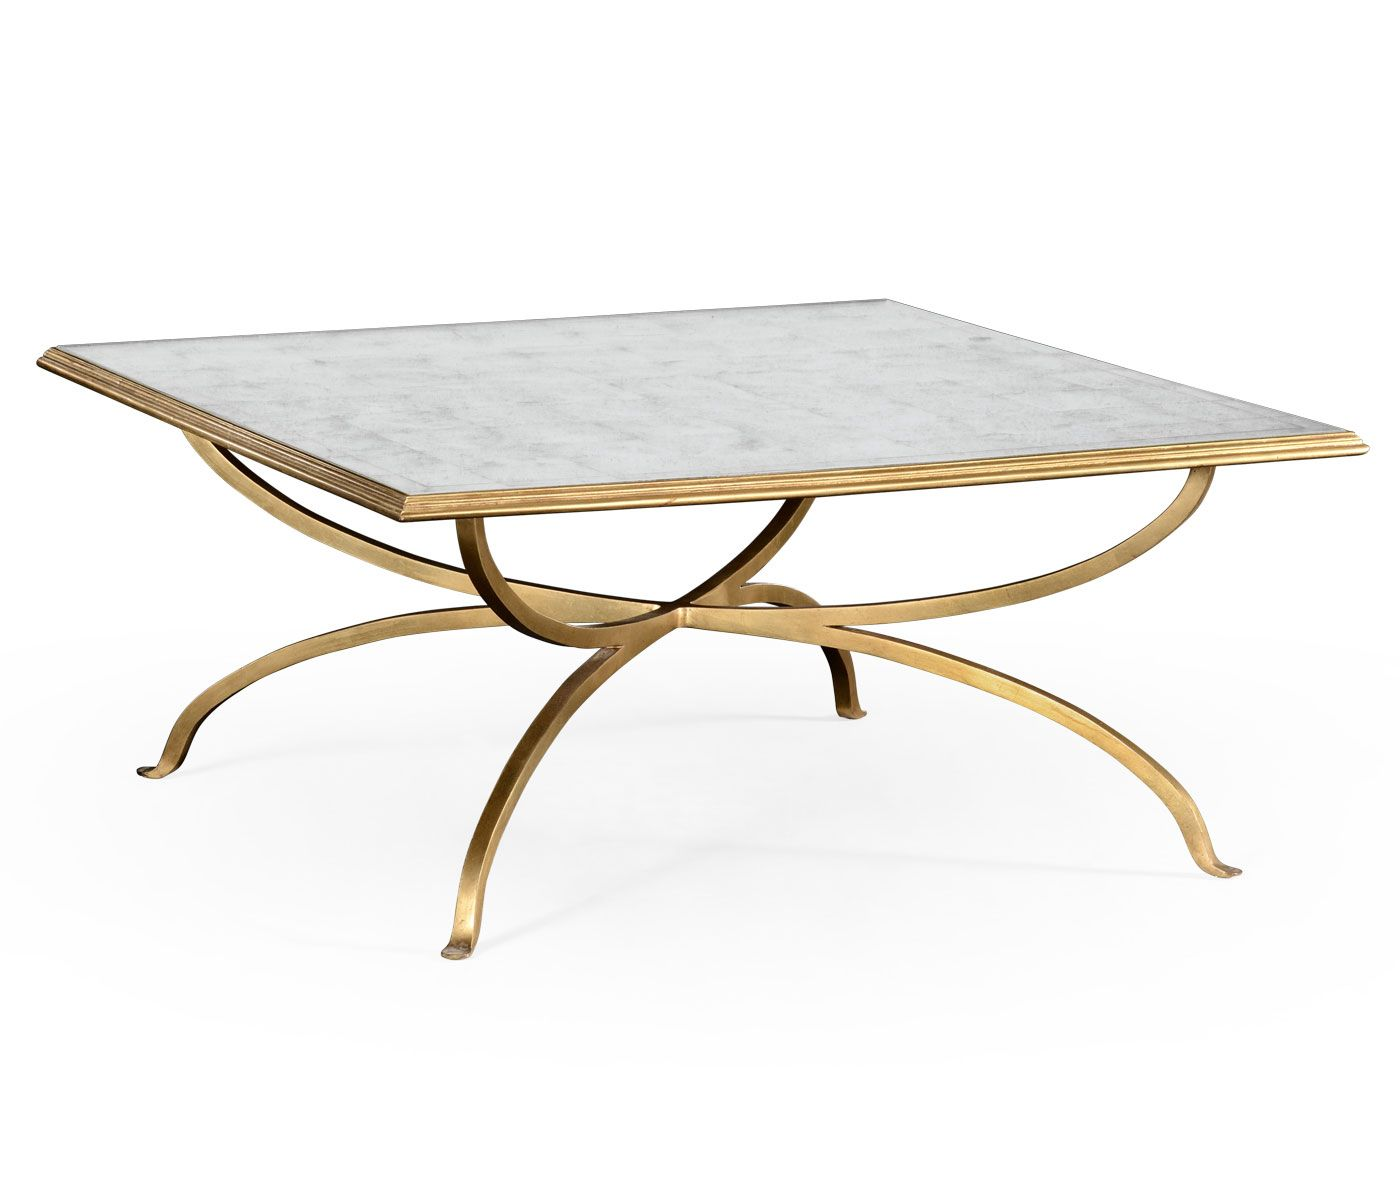 Églomisé And Gilded Iron Square Coffee Table Gold